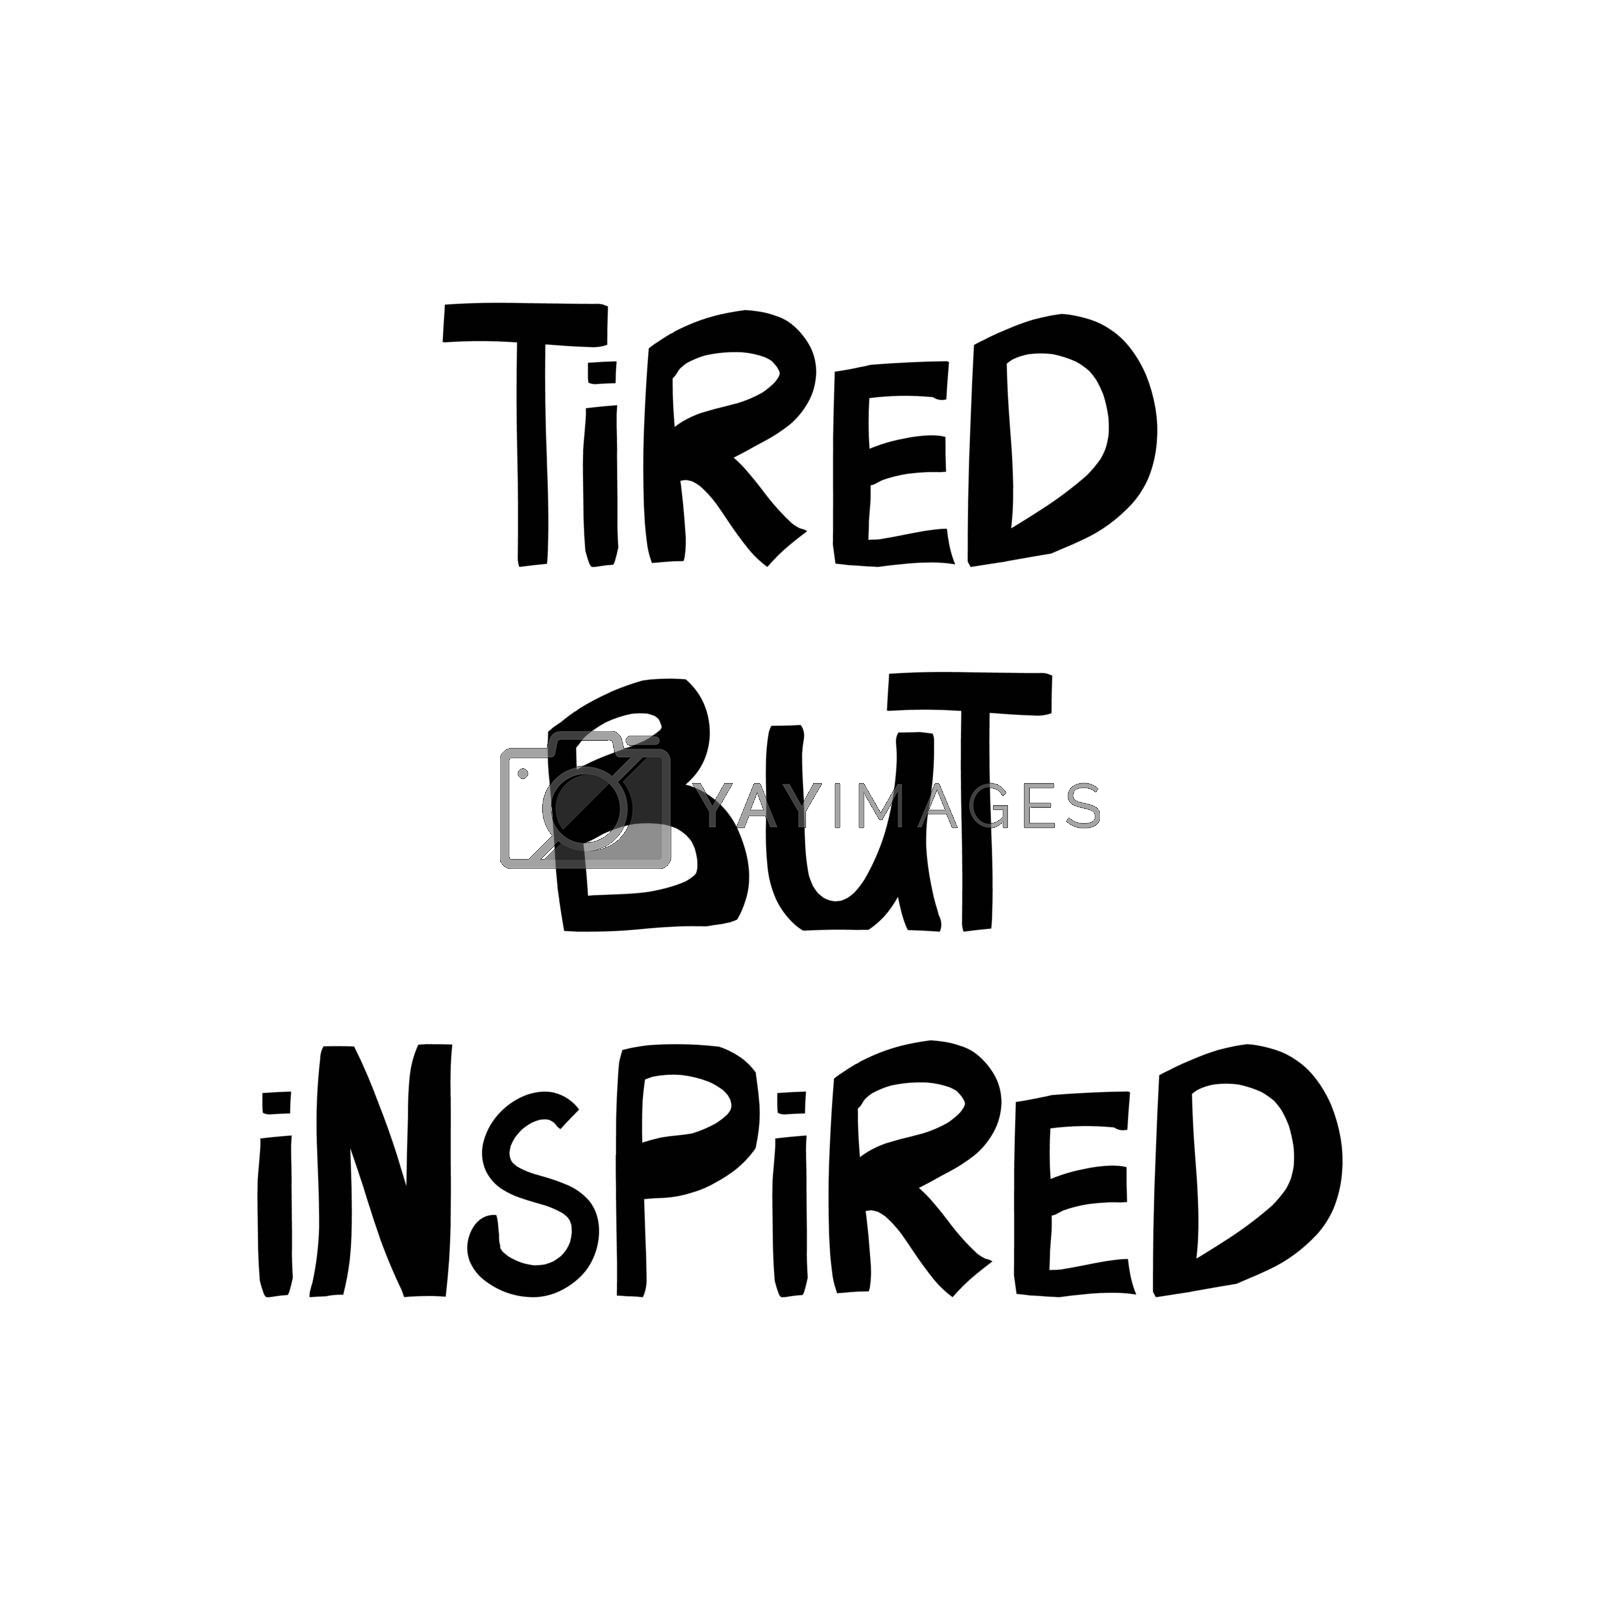 Tired but inspired. Motivation quote. Cute hand drawn lettering in modern scandinavian style. Isolated on white. Vector stock illustration.